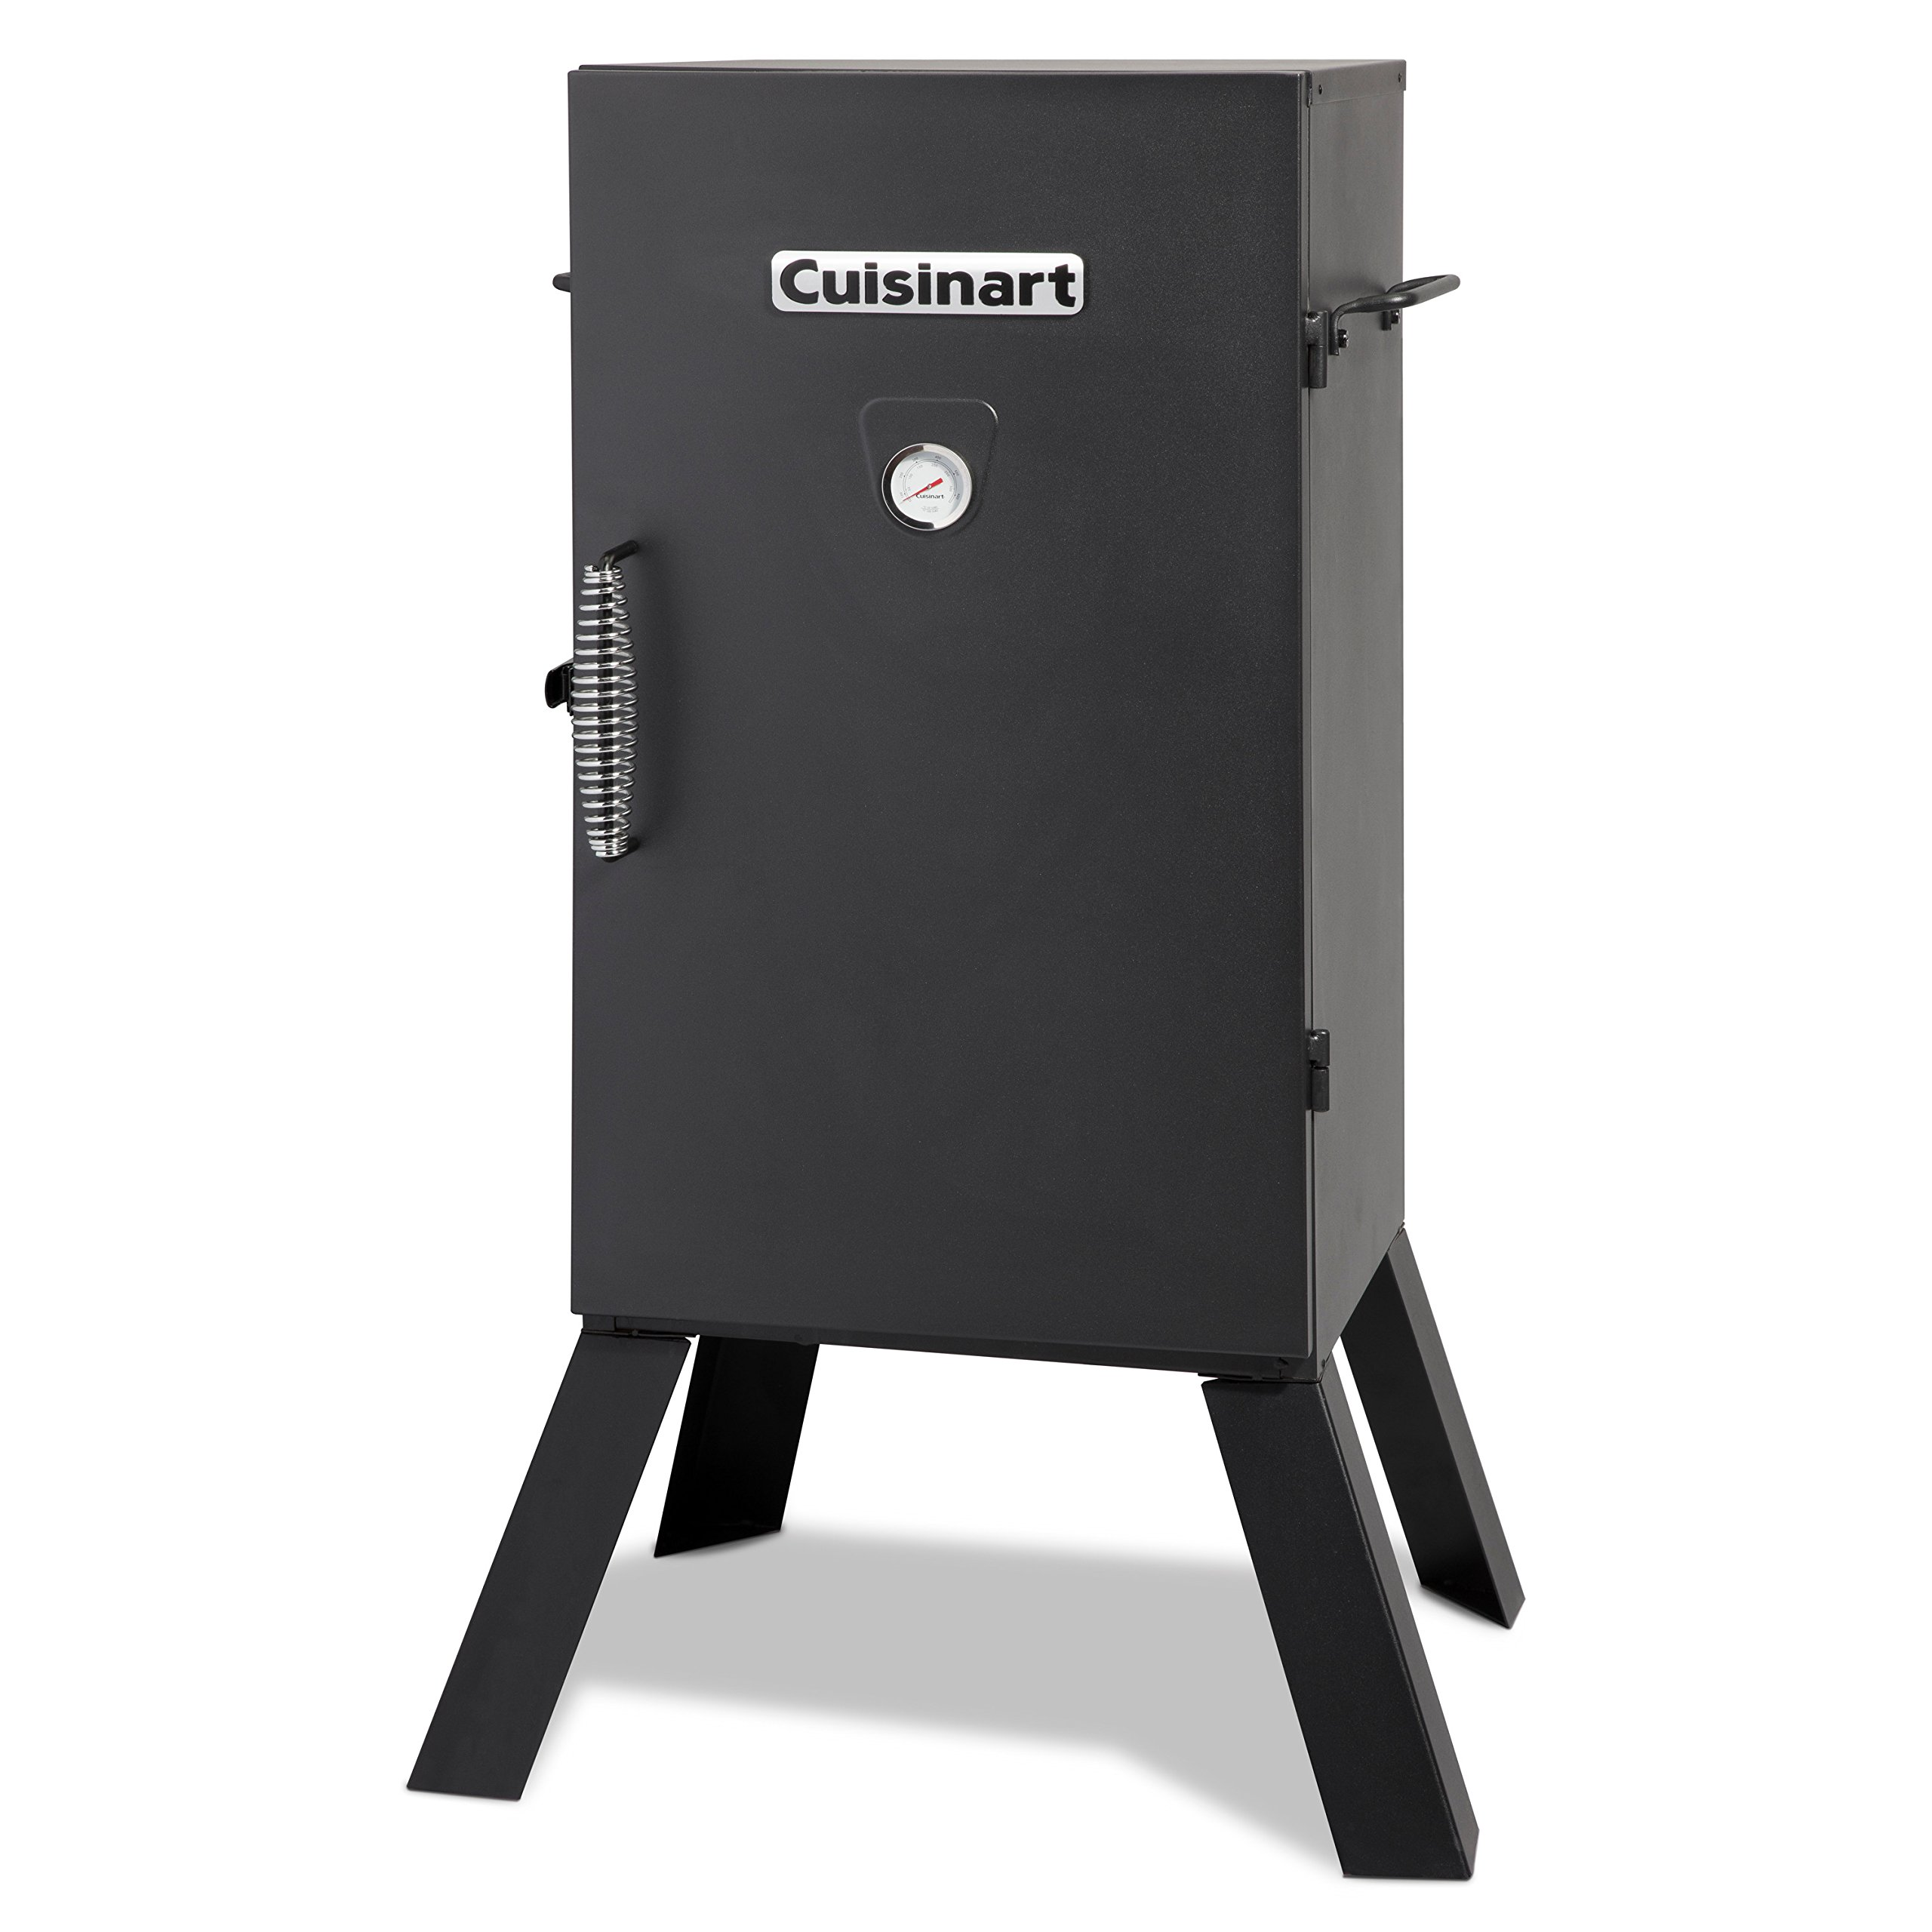 Cuisinart COS-330 Electric Smoker by Cuisinart (Image #1)